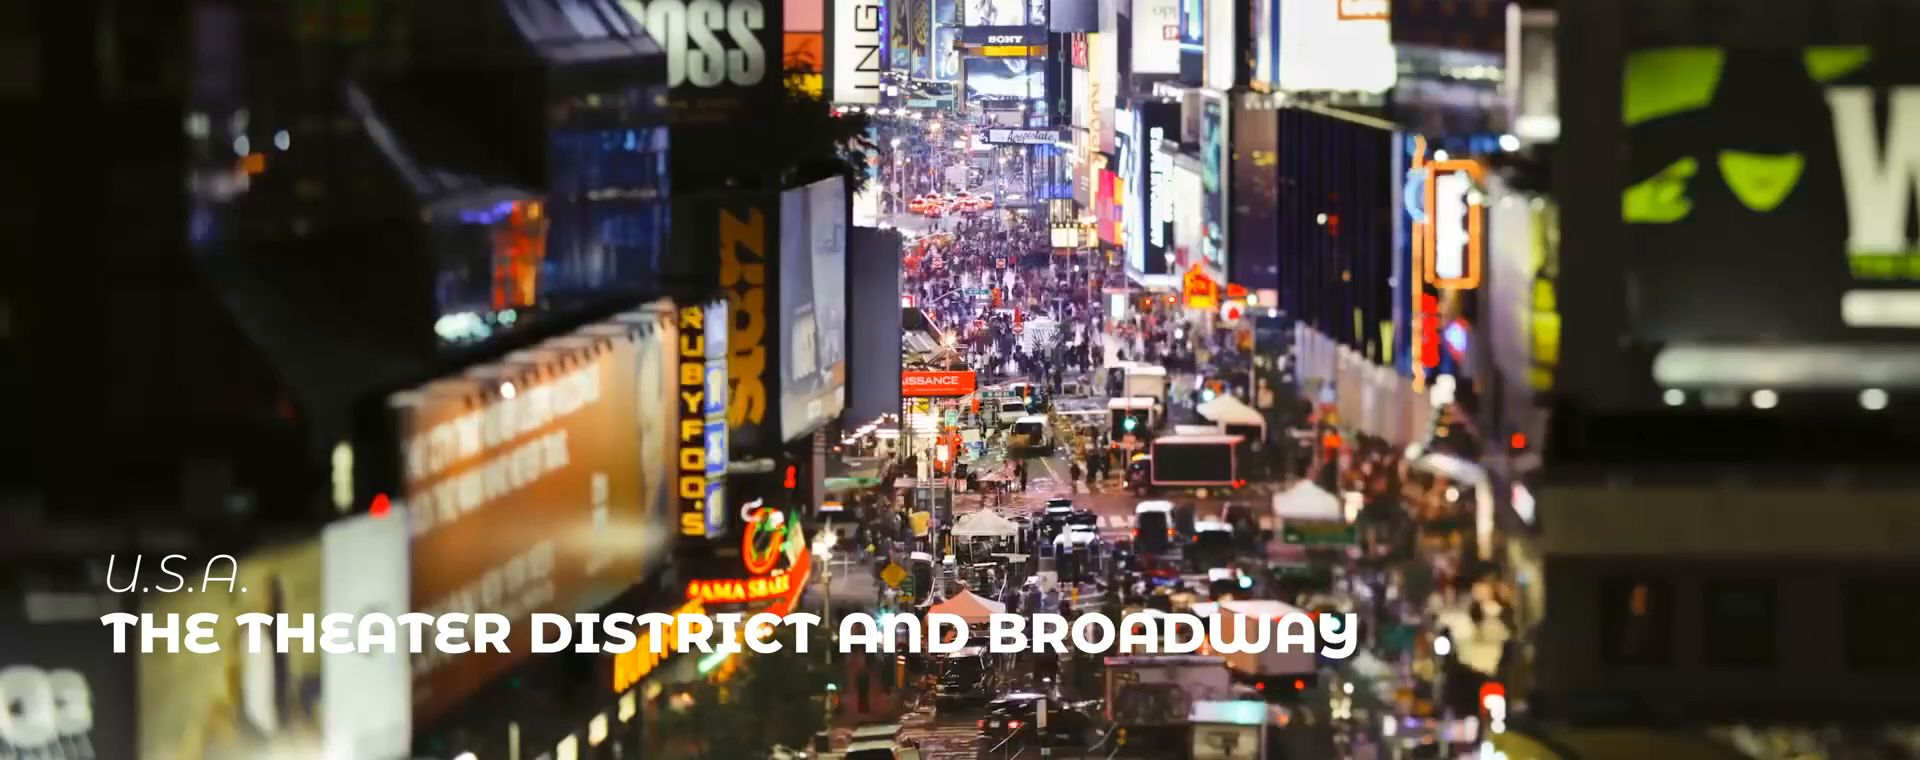 THE THEATER DISTRICT AND BROADWAY